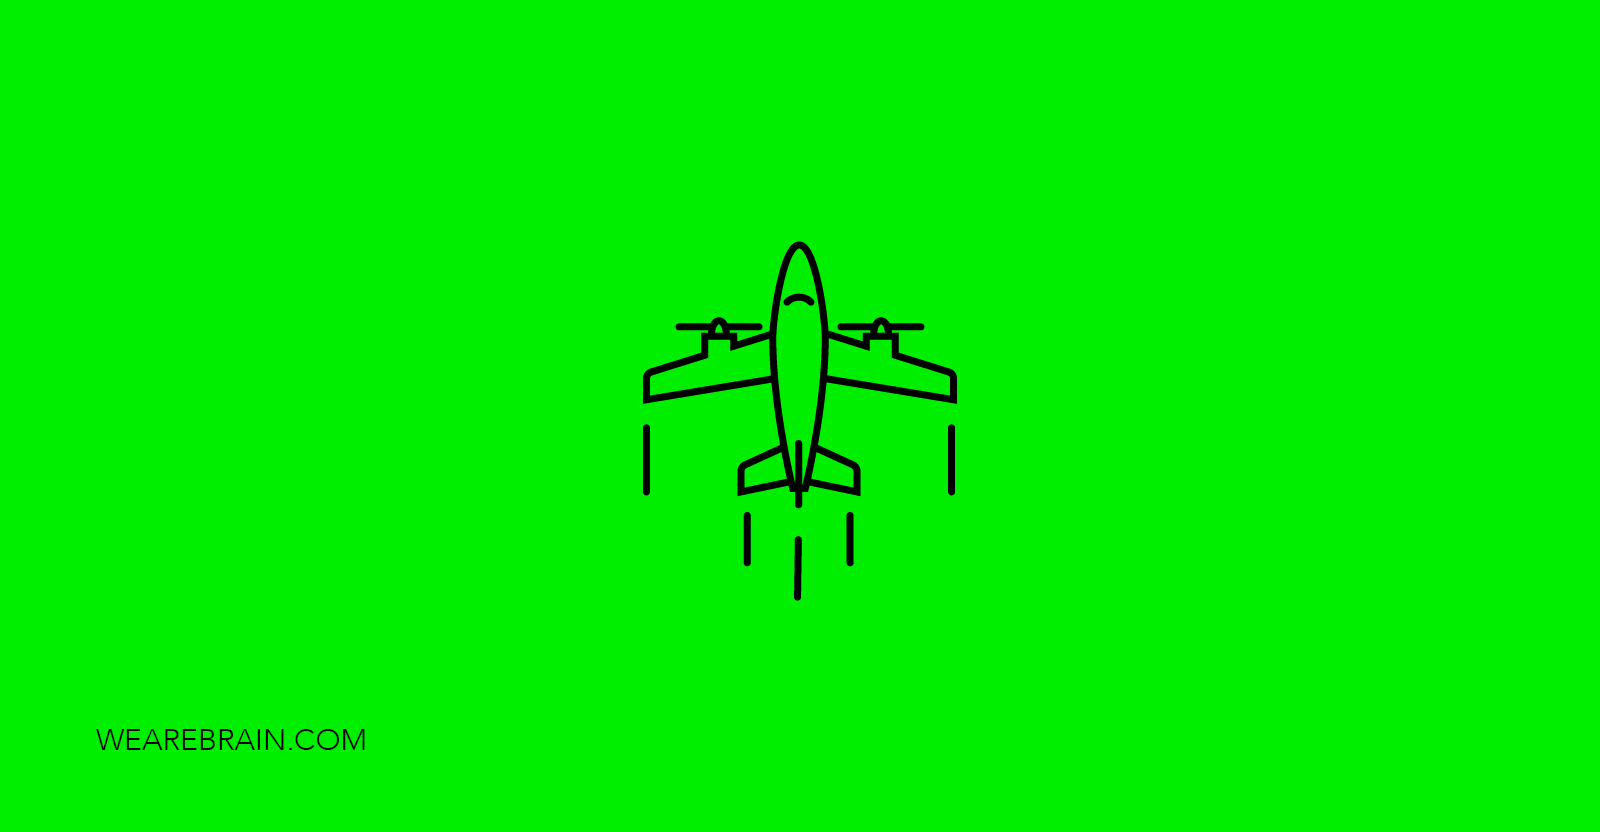 icon illustration of a flying airplane